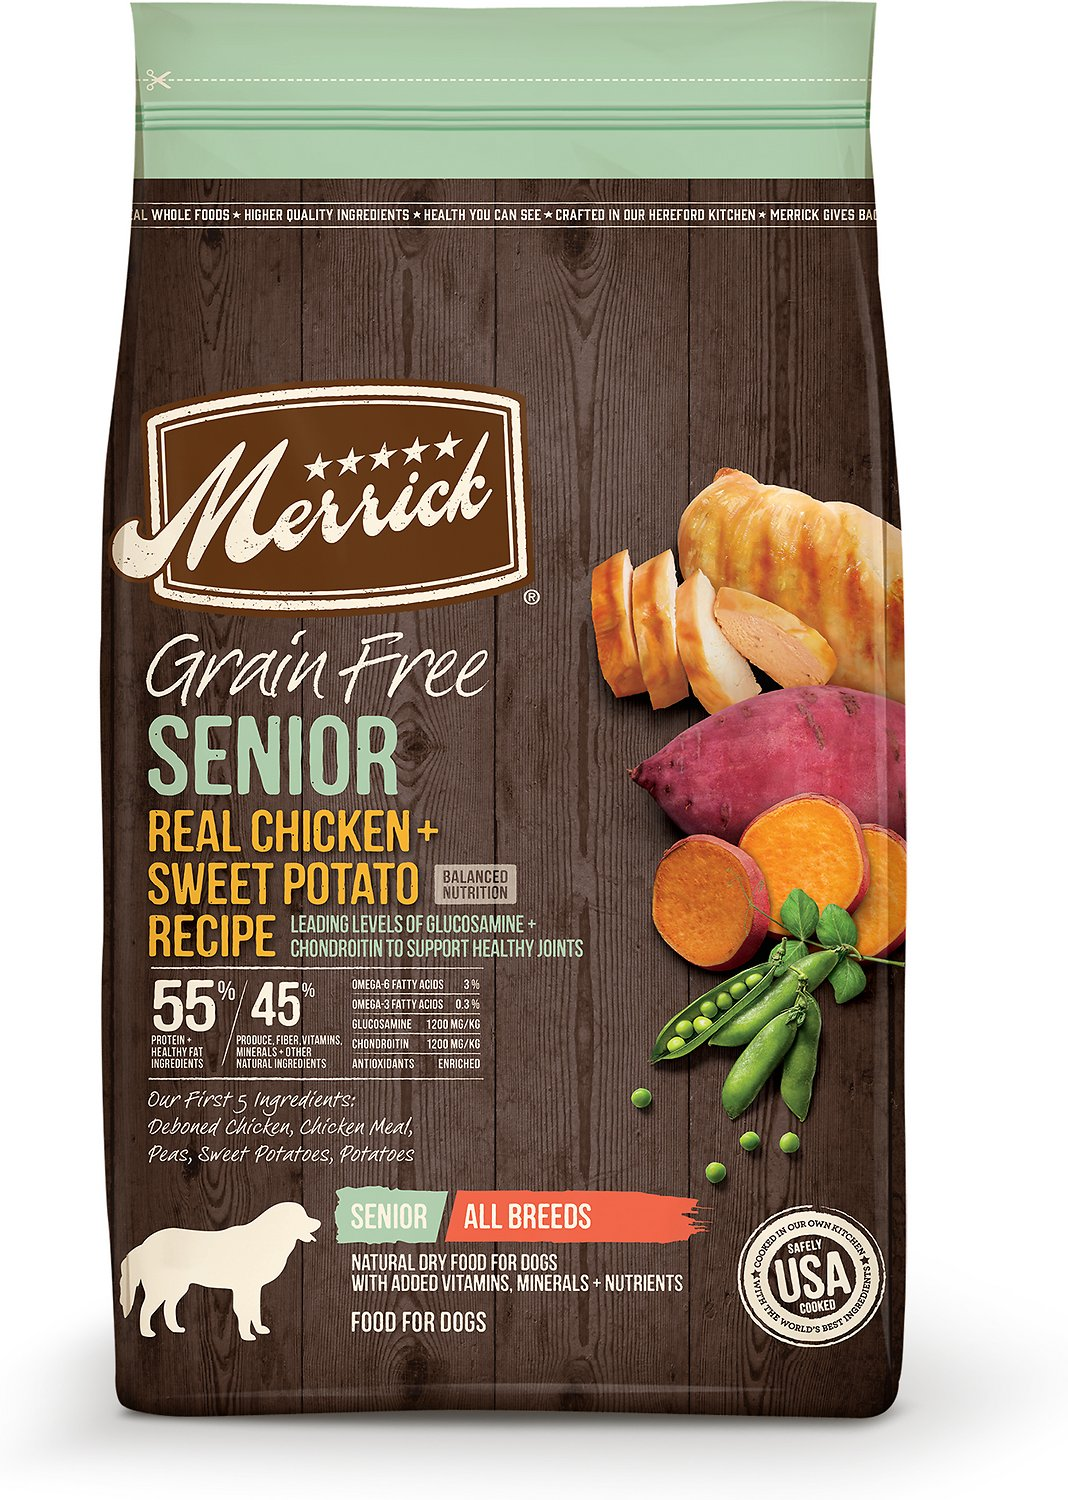 Merrick Real Chicken & Sweet Potato Recipe Grain Free Senior Dry Dog Food Image